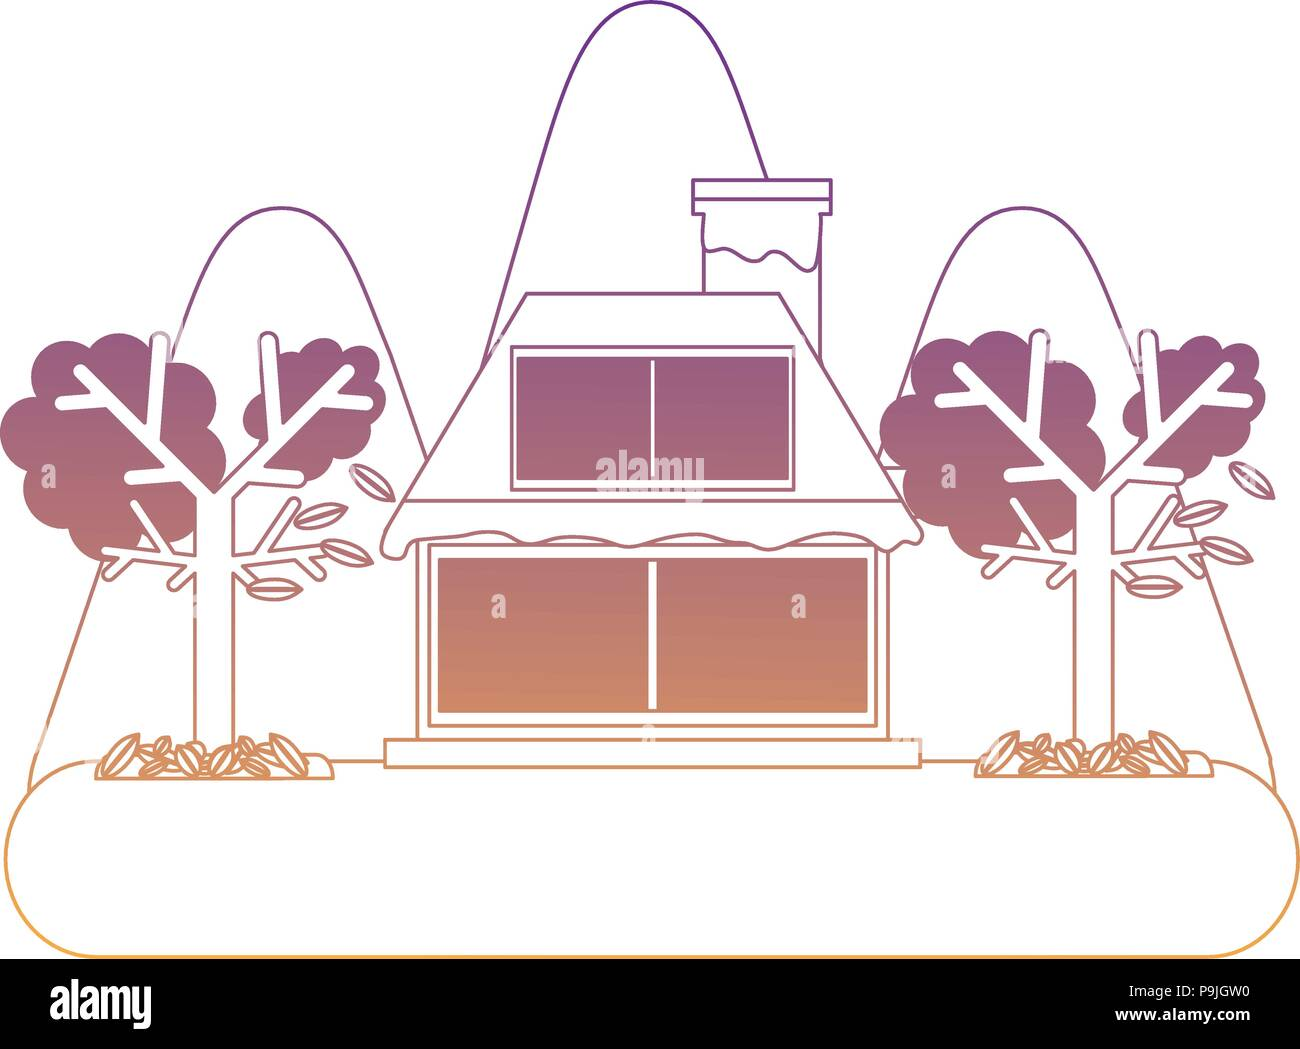 cabin house and dry trees icon over white background, vector illustration - Stock Vector